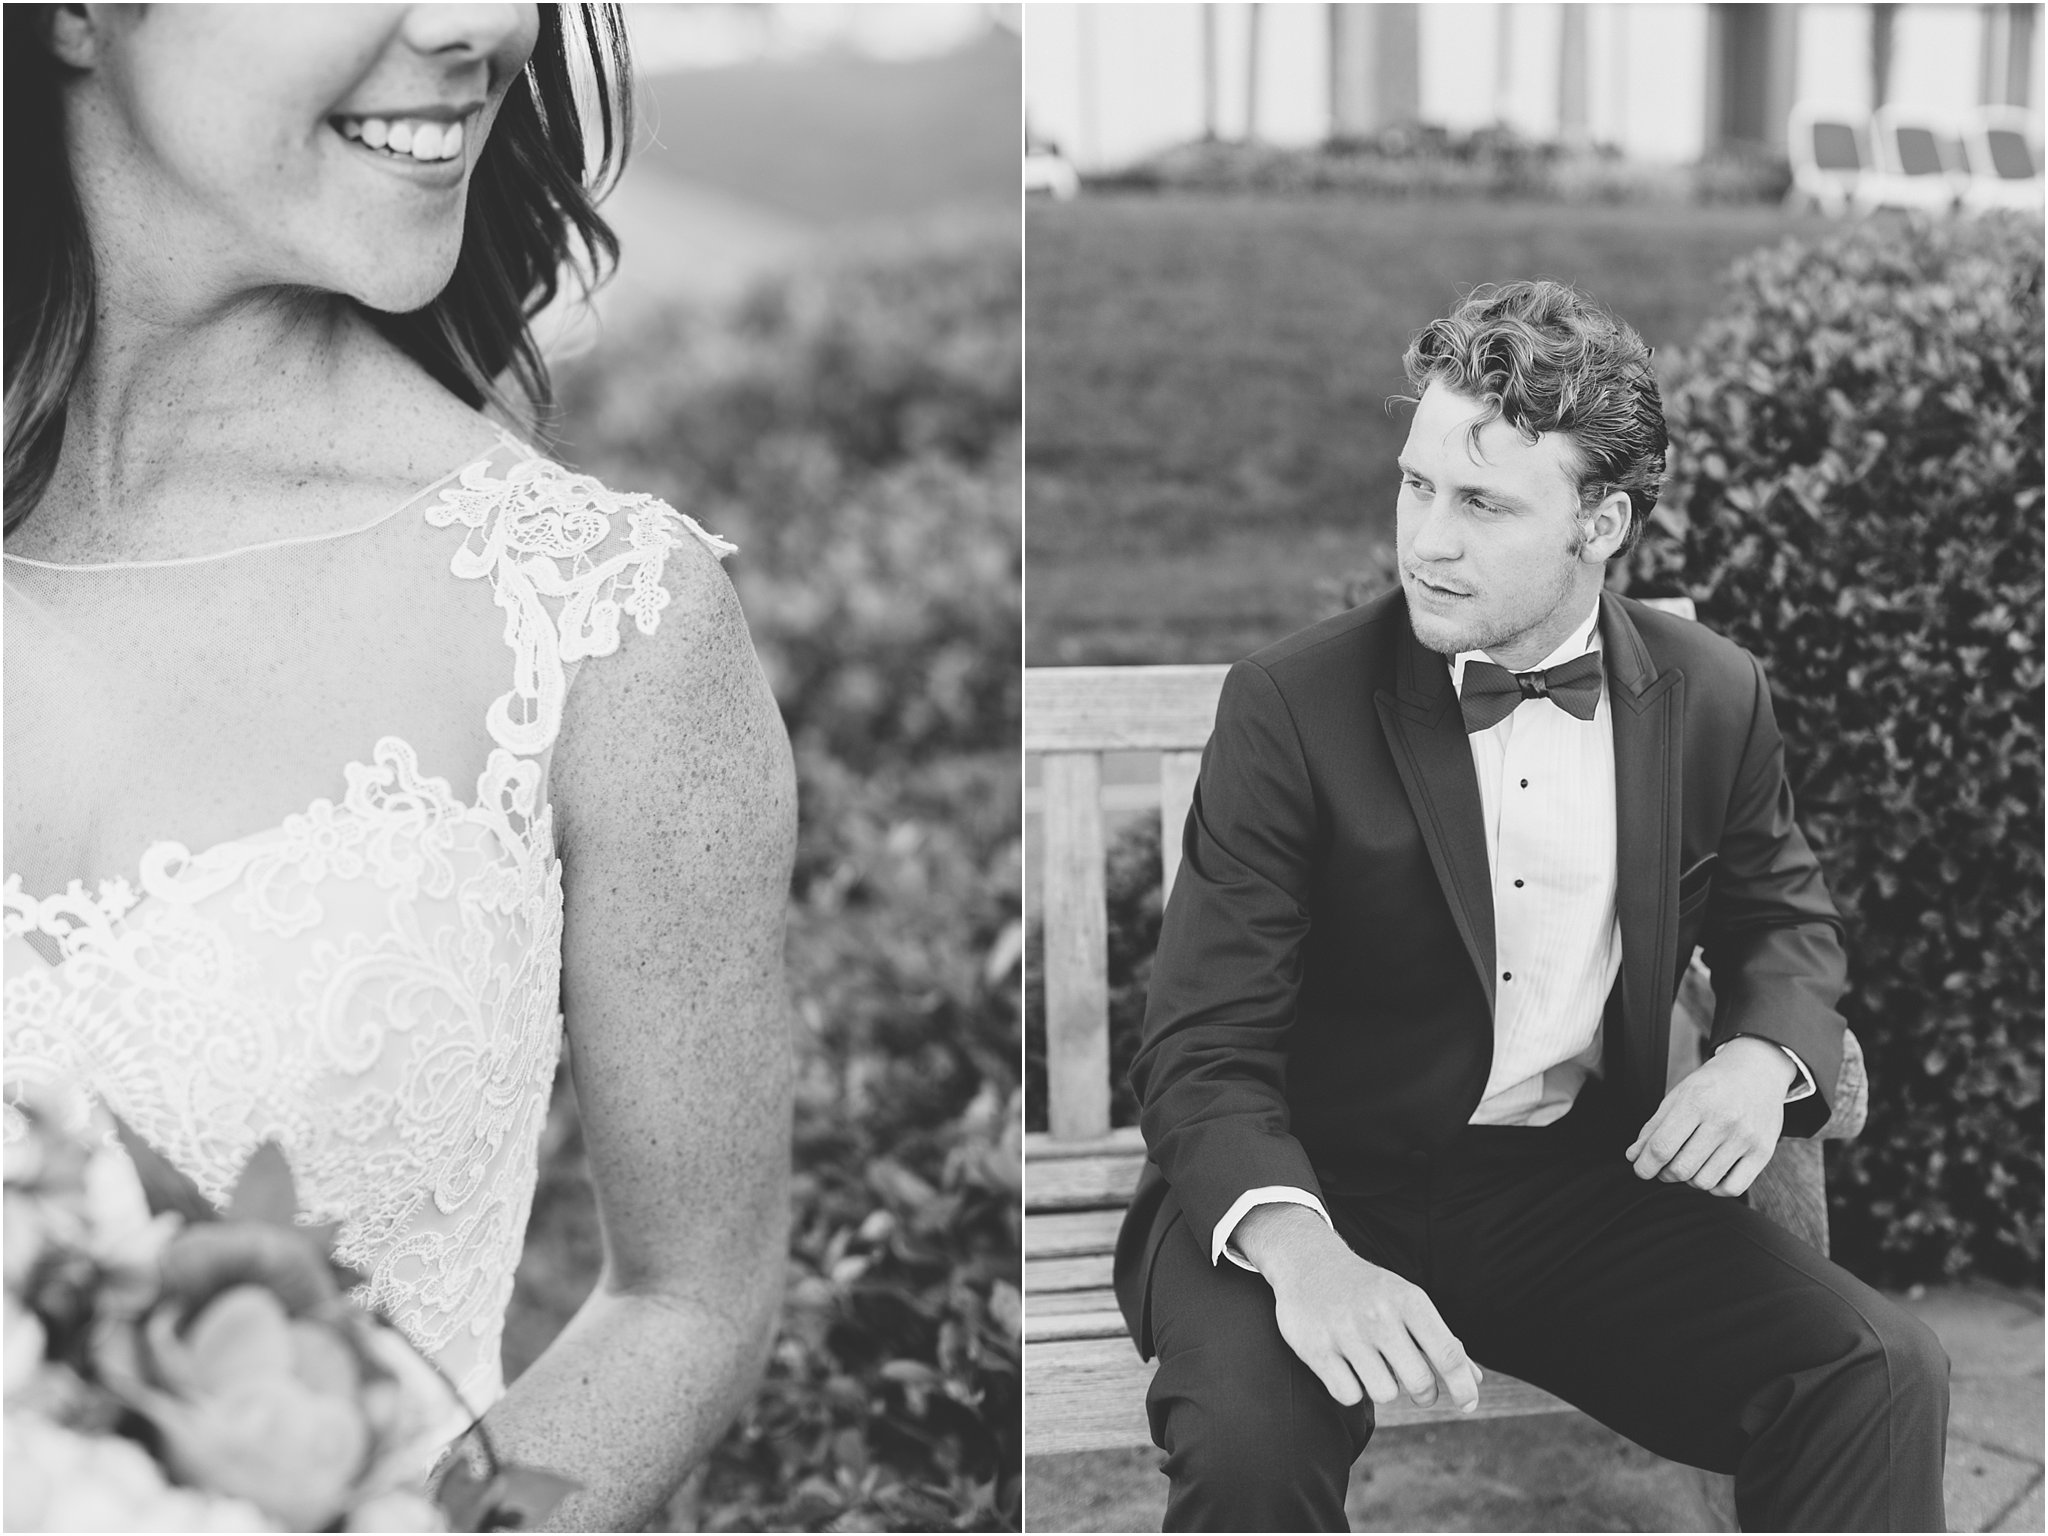 jessica_ryan_photography_wedding_photographs_must_haves_bride_top_wedding_photographs_virginia_wedding_photographer_2031